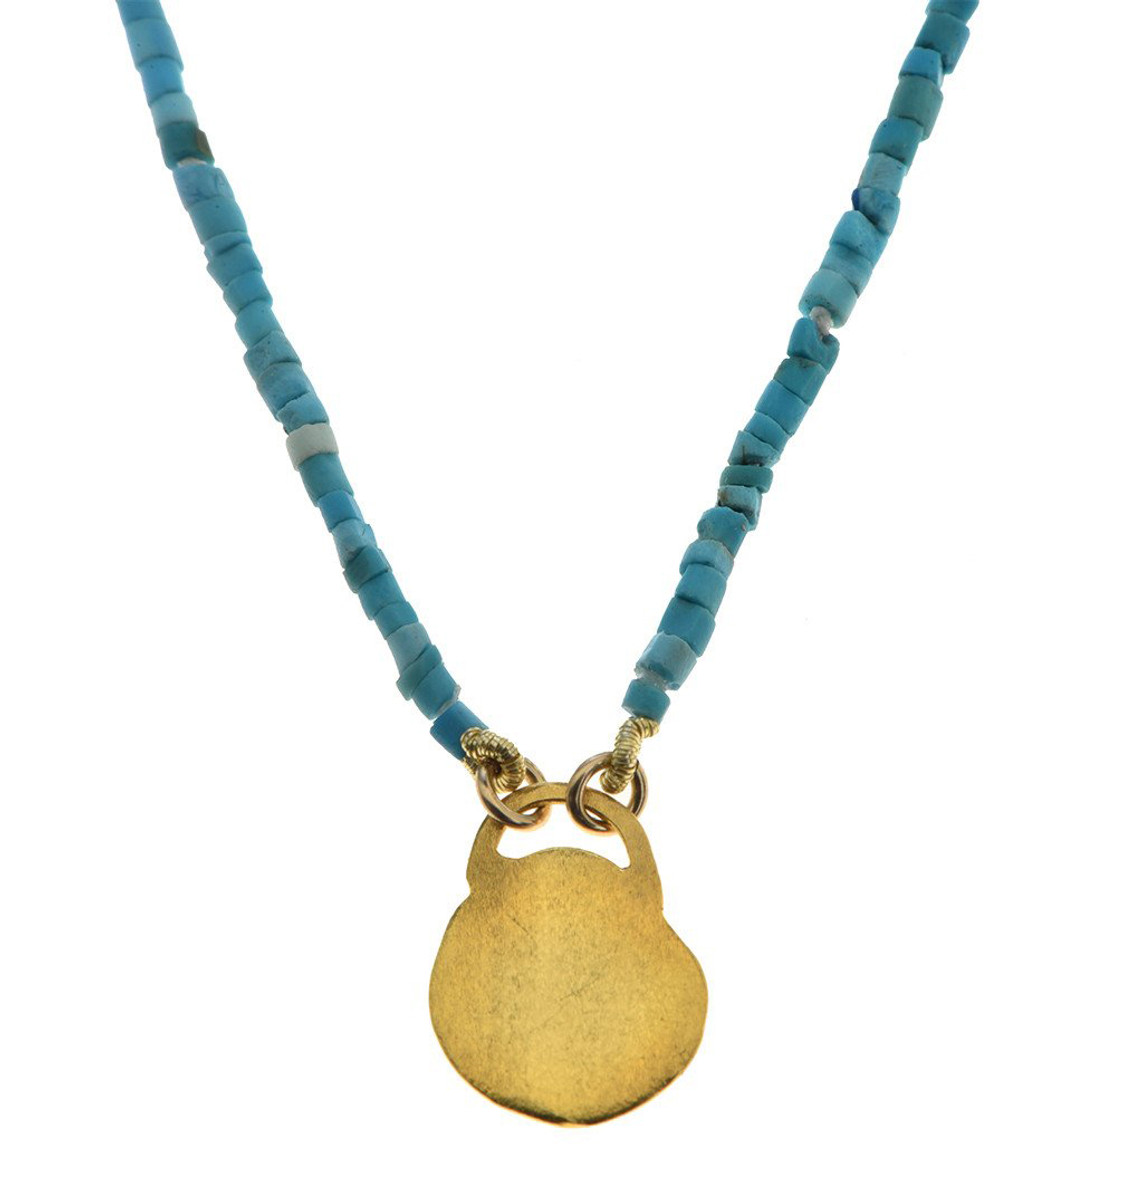 Turquoise and Pure Gold Necklace by Nava Zahavi - New Arrival